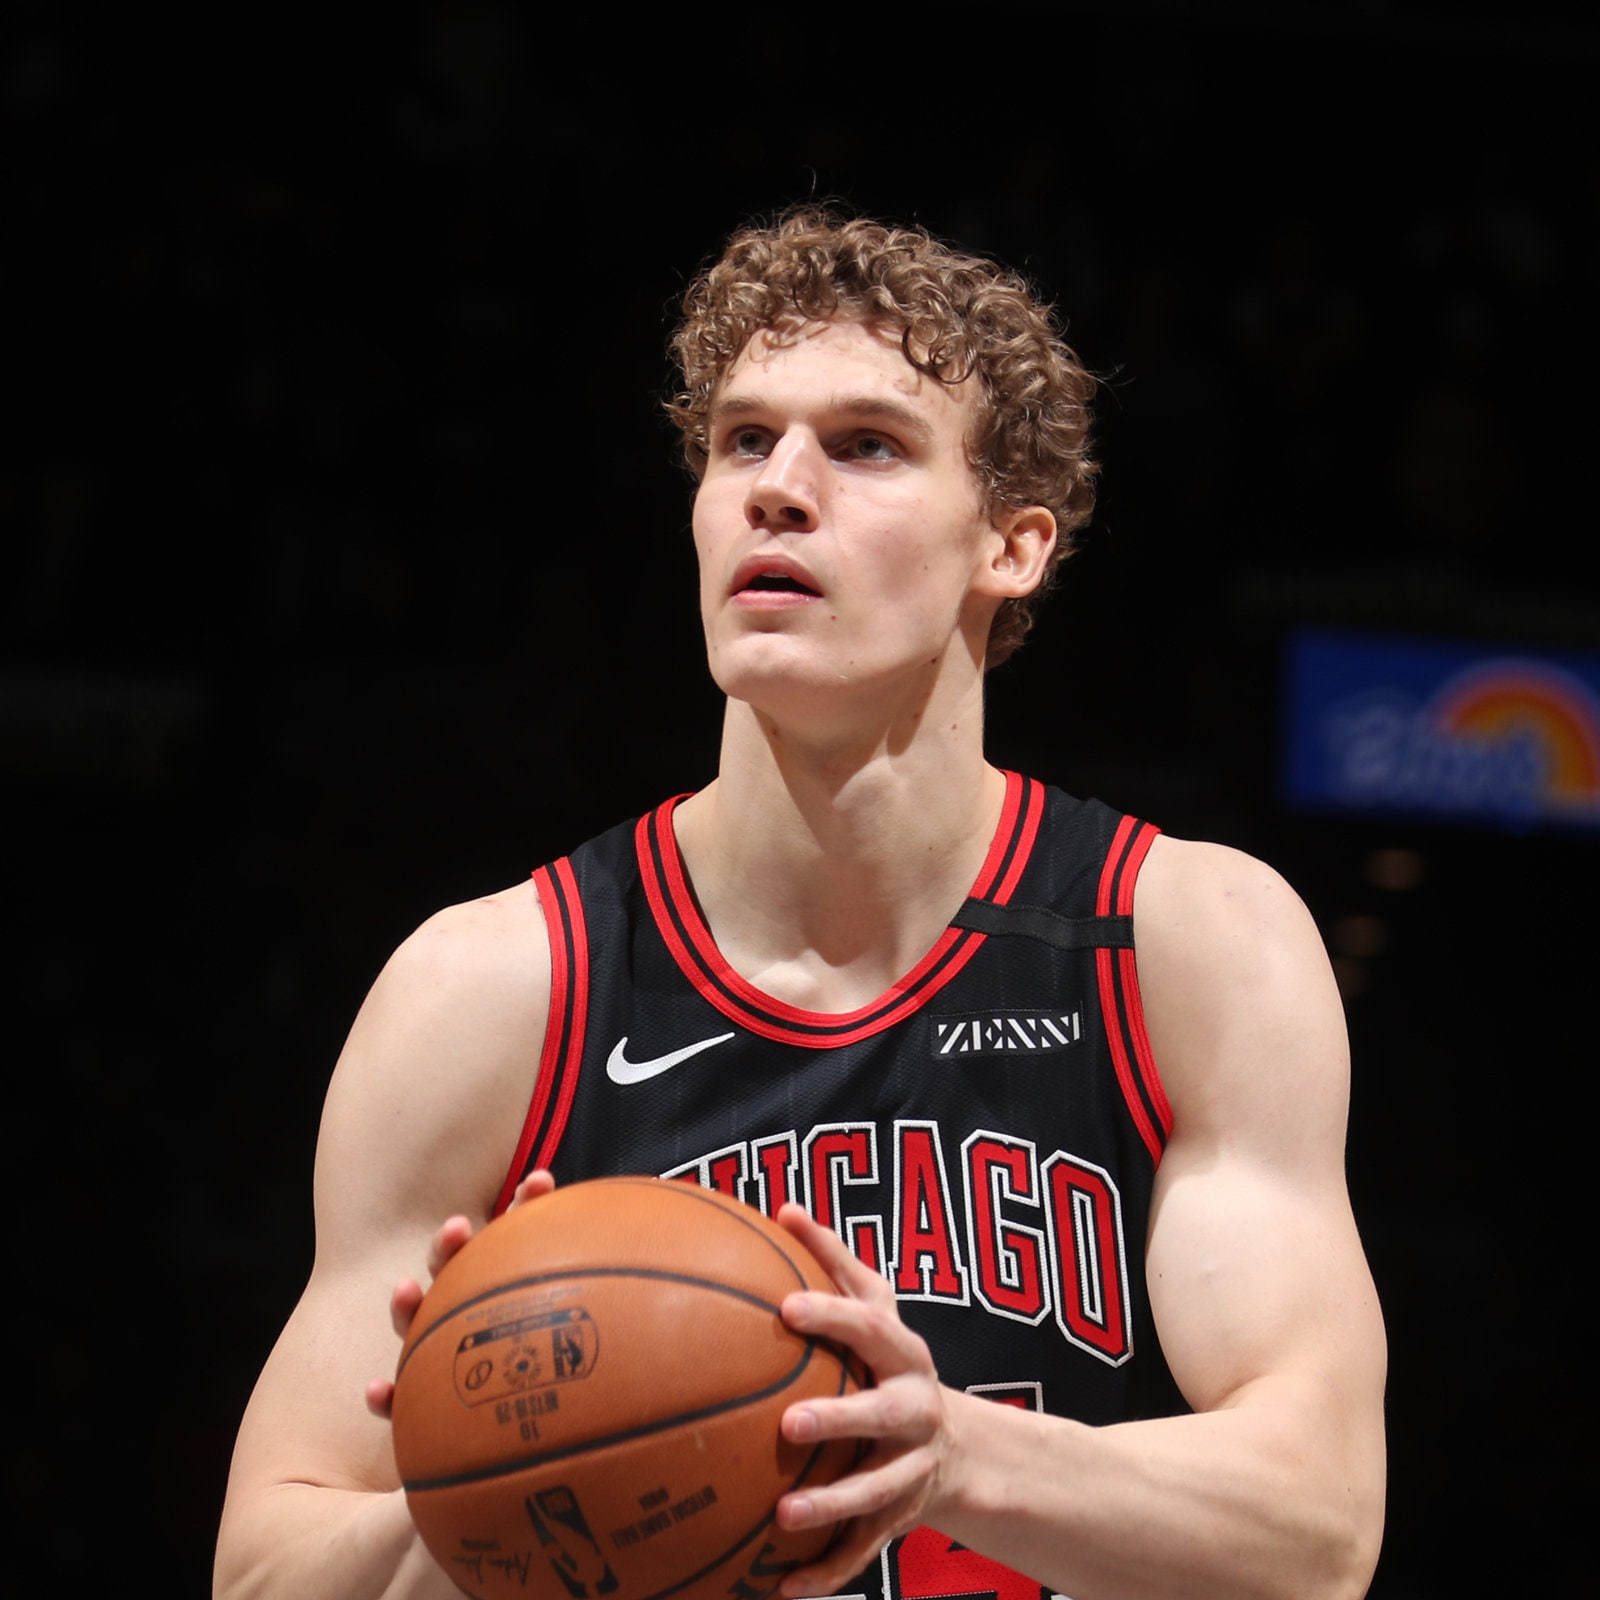 Lauri Markkanen #24 of the Chicago Bulls shoots a free throw against the Brooklyn Nets on March 8, 2020 at Barclays Center in Brooklyn, New York.